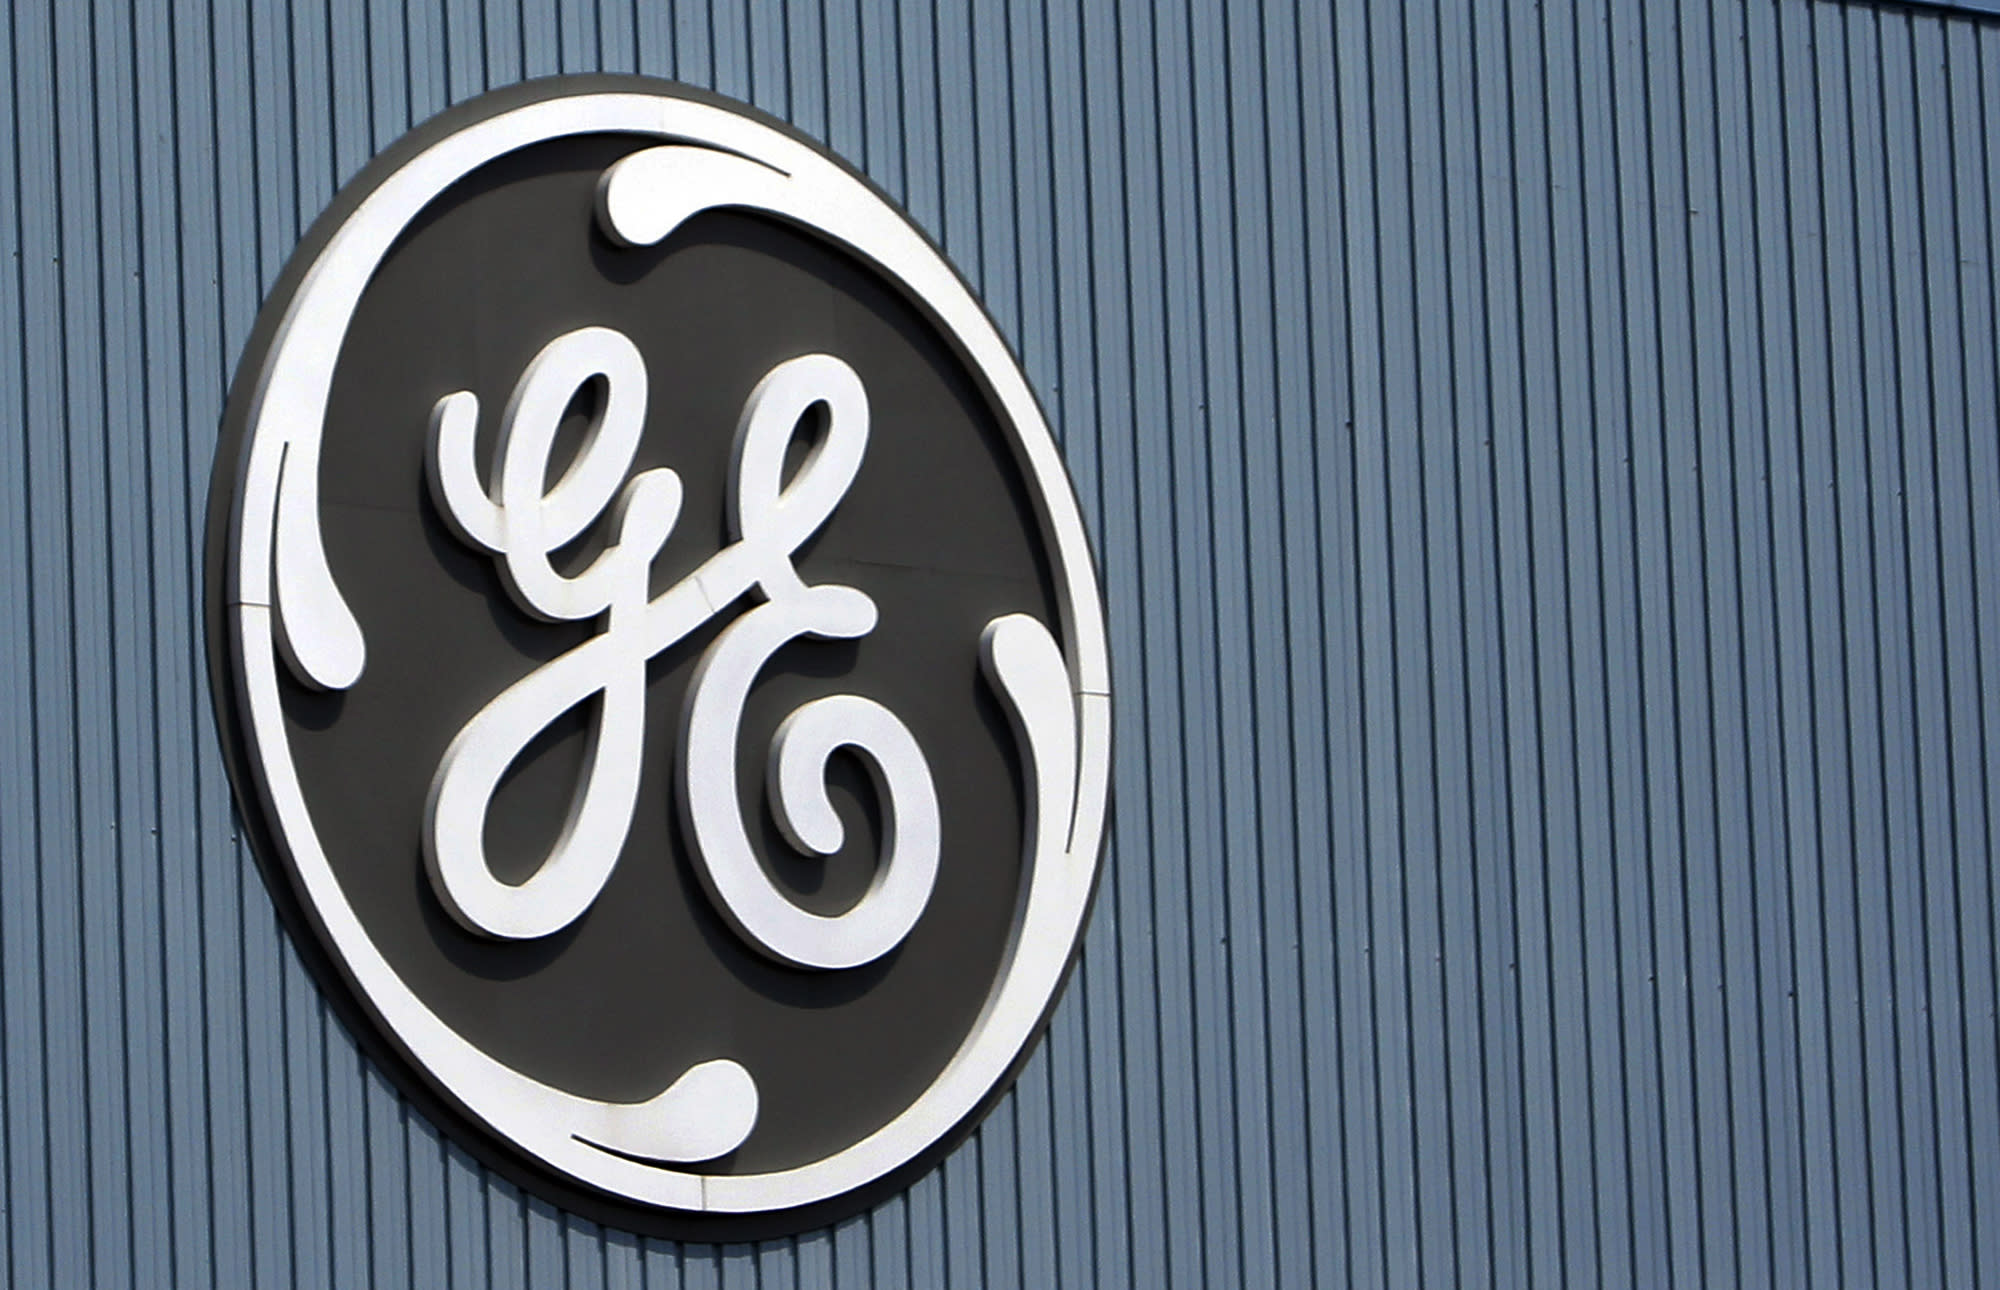 Companies to watch general electric broadcom att time warner companies to watch general electric broadcom att time warner and lego buycottarizona